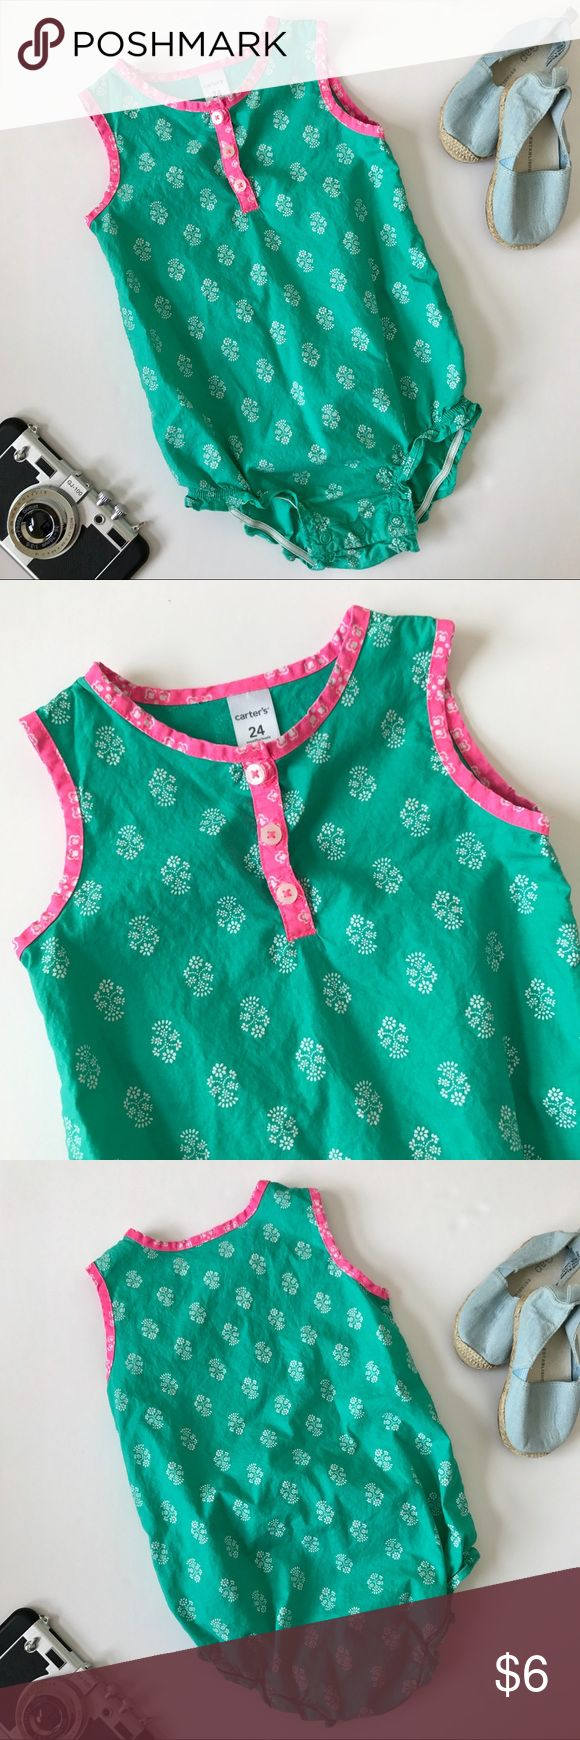 Carter's Sleeveless Bodysuit Blouse (Girls 24 Mos) Keep her as cool as she is cute this summer in this sleeveless bodysuit romper from Carter's. Features bright teal green and fuschia pink floral print, three button closure at neckline, snap bottom for easy dressing and changes, and elasticized leg openenings. EUC. Girls size 24 mos.     ▪️Next day shipping from a smoke & pet-free home.   ▪️No trades, always open to offers, and all photos are of actual item. Carter's One Pieces Bodysuits